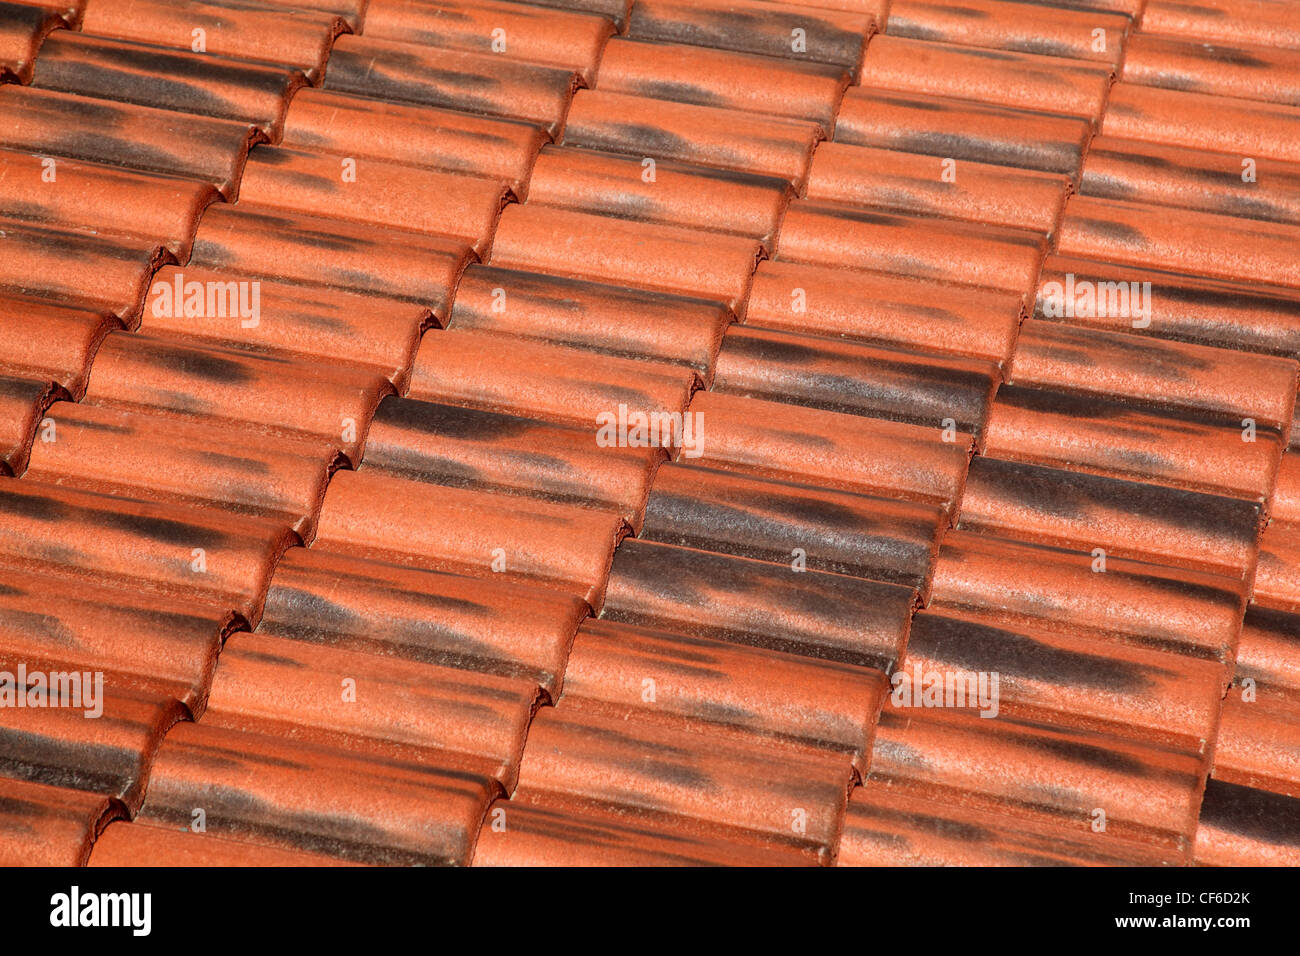 Old terracotta tile roof, detailed structure view at an angle the tiles - Stock Image